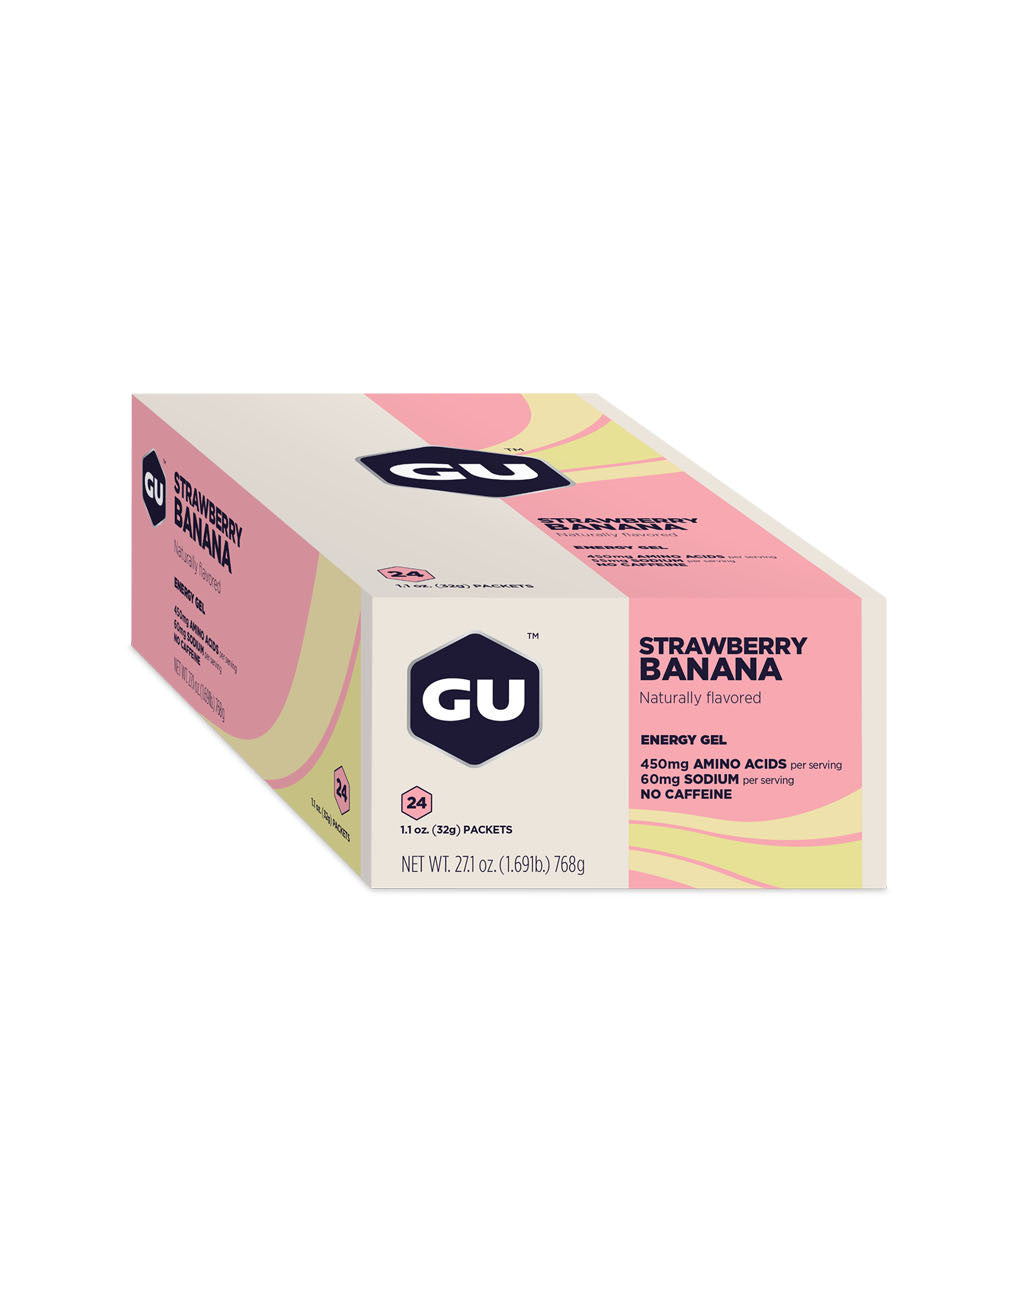 GU Energy Gel (24ct box)Strawberry Banana_master_image